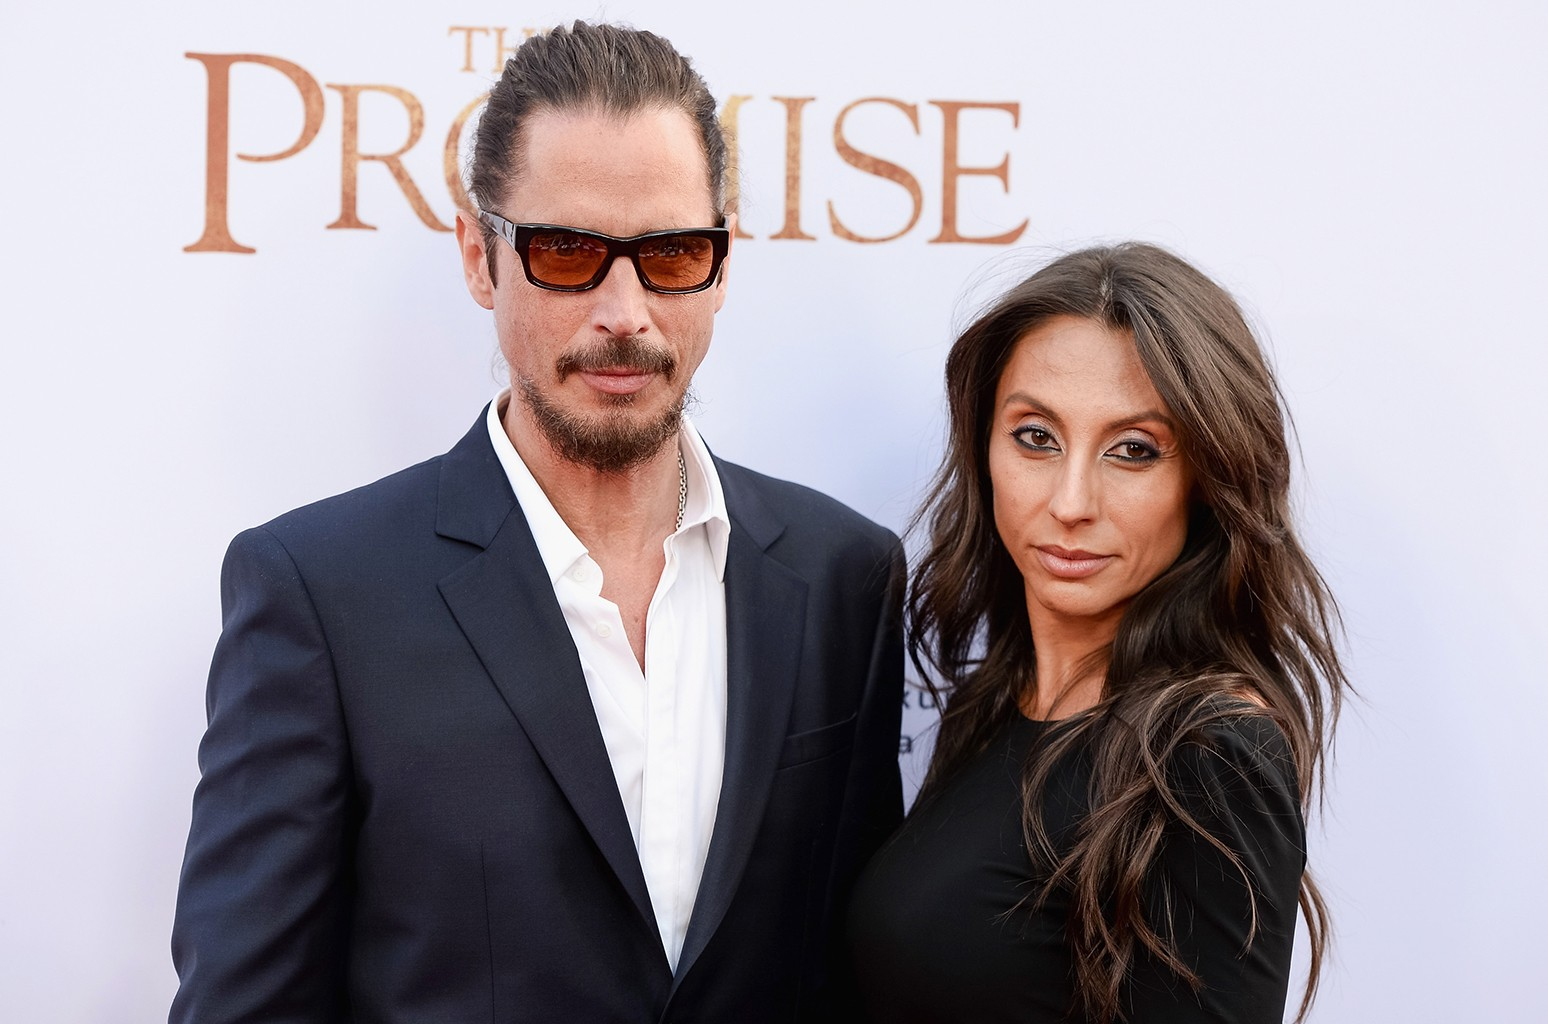 Chris Cornell and Vicky Karayiannis arrive to the Los Angeles premiere of The Promise at TCL Chinese Theatre on April 12, 2017 in Hollywood, Calif.